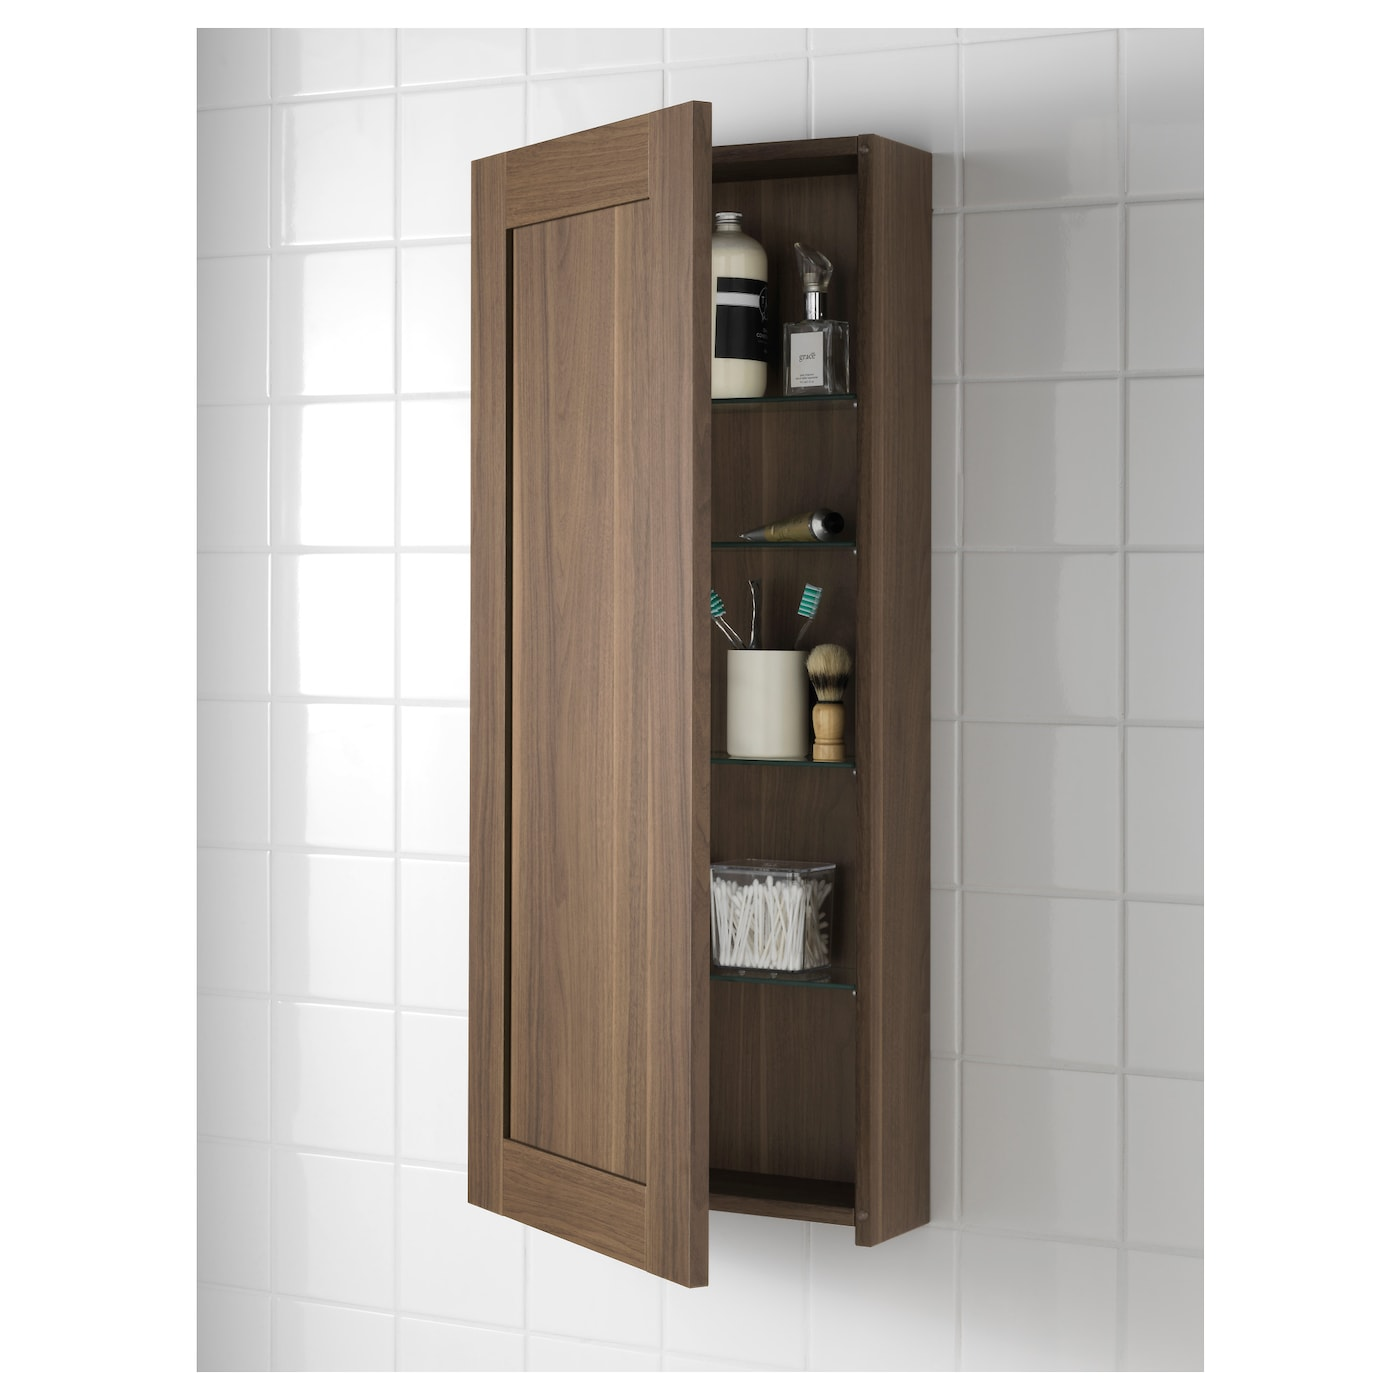 bathroom storage wall cabinet godmorgon wall cabinet with 1 door walnut effect 40 x 14 x 11728